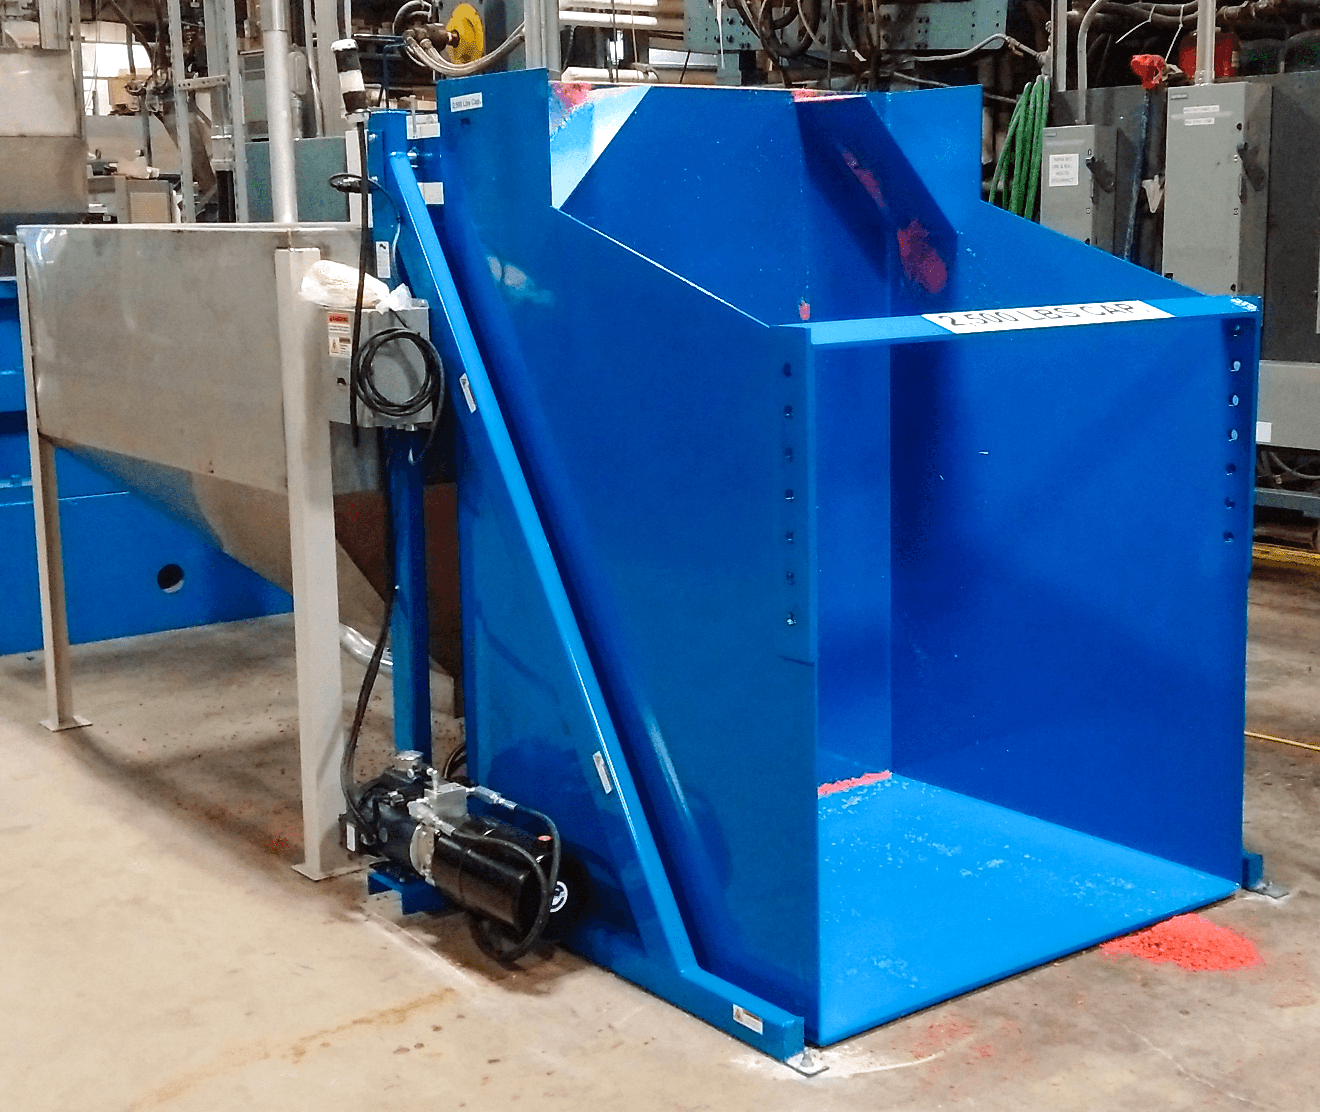 Dumper with Containing Compartment